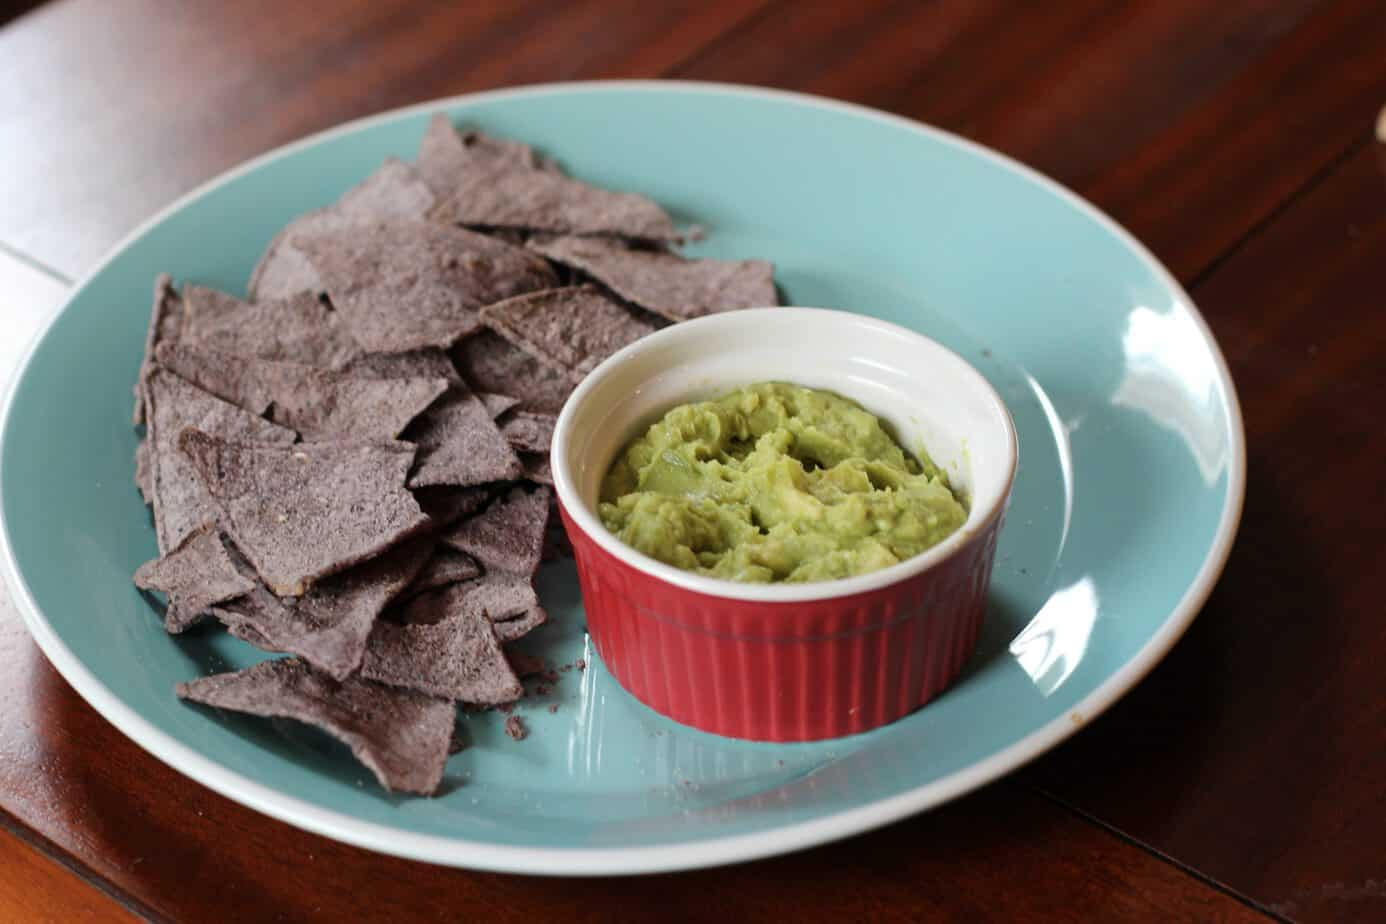 guacamole and baked chips